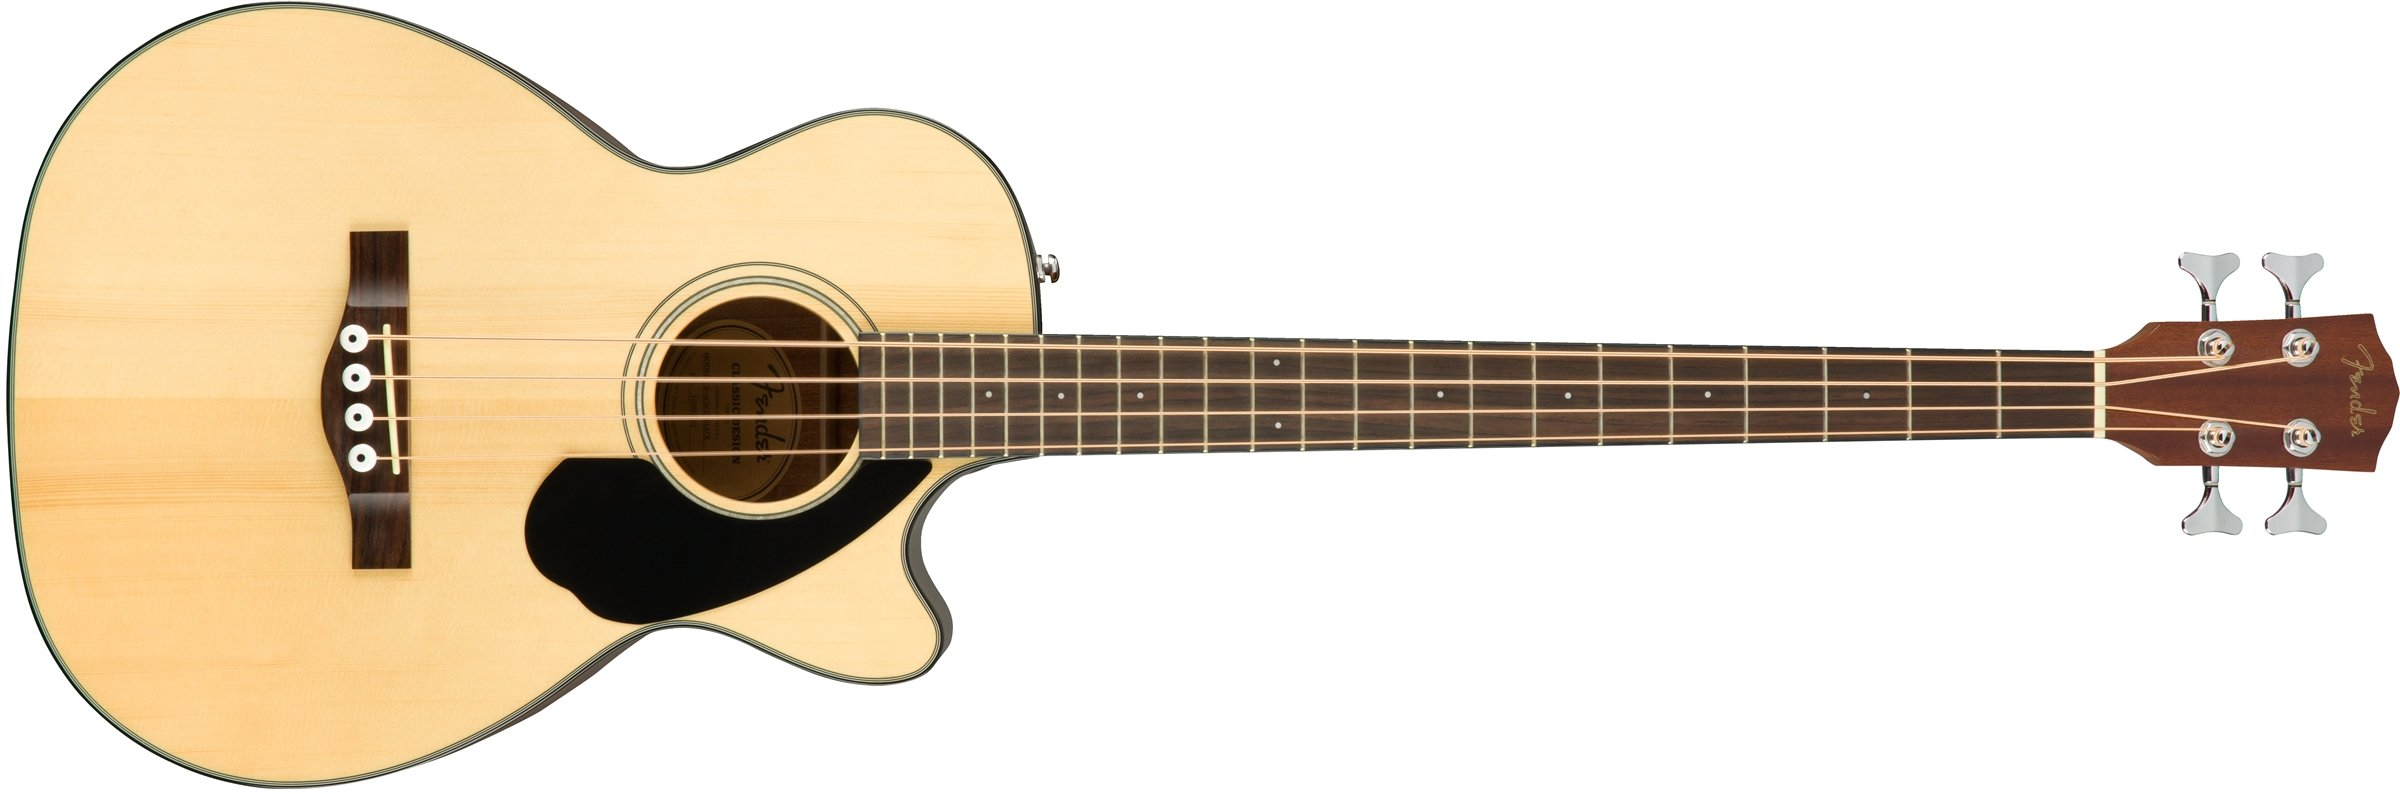 Fender CB-60SCE All Mahogany Acoustic-Electric Bass Guitar - Natural Finish